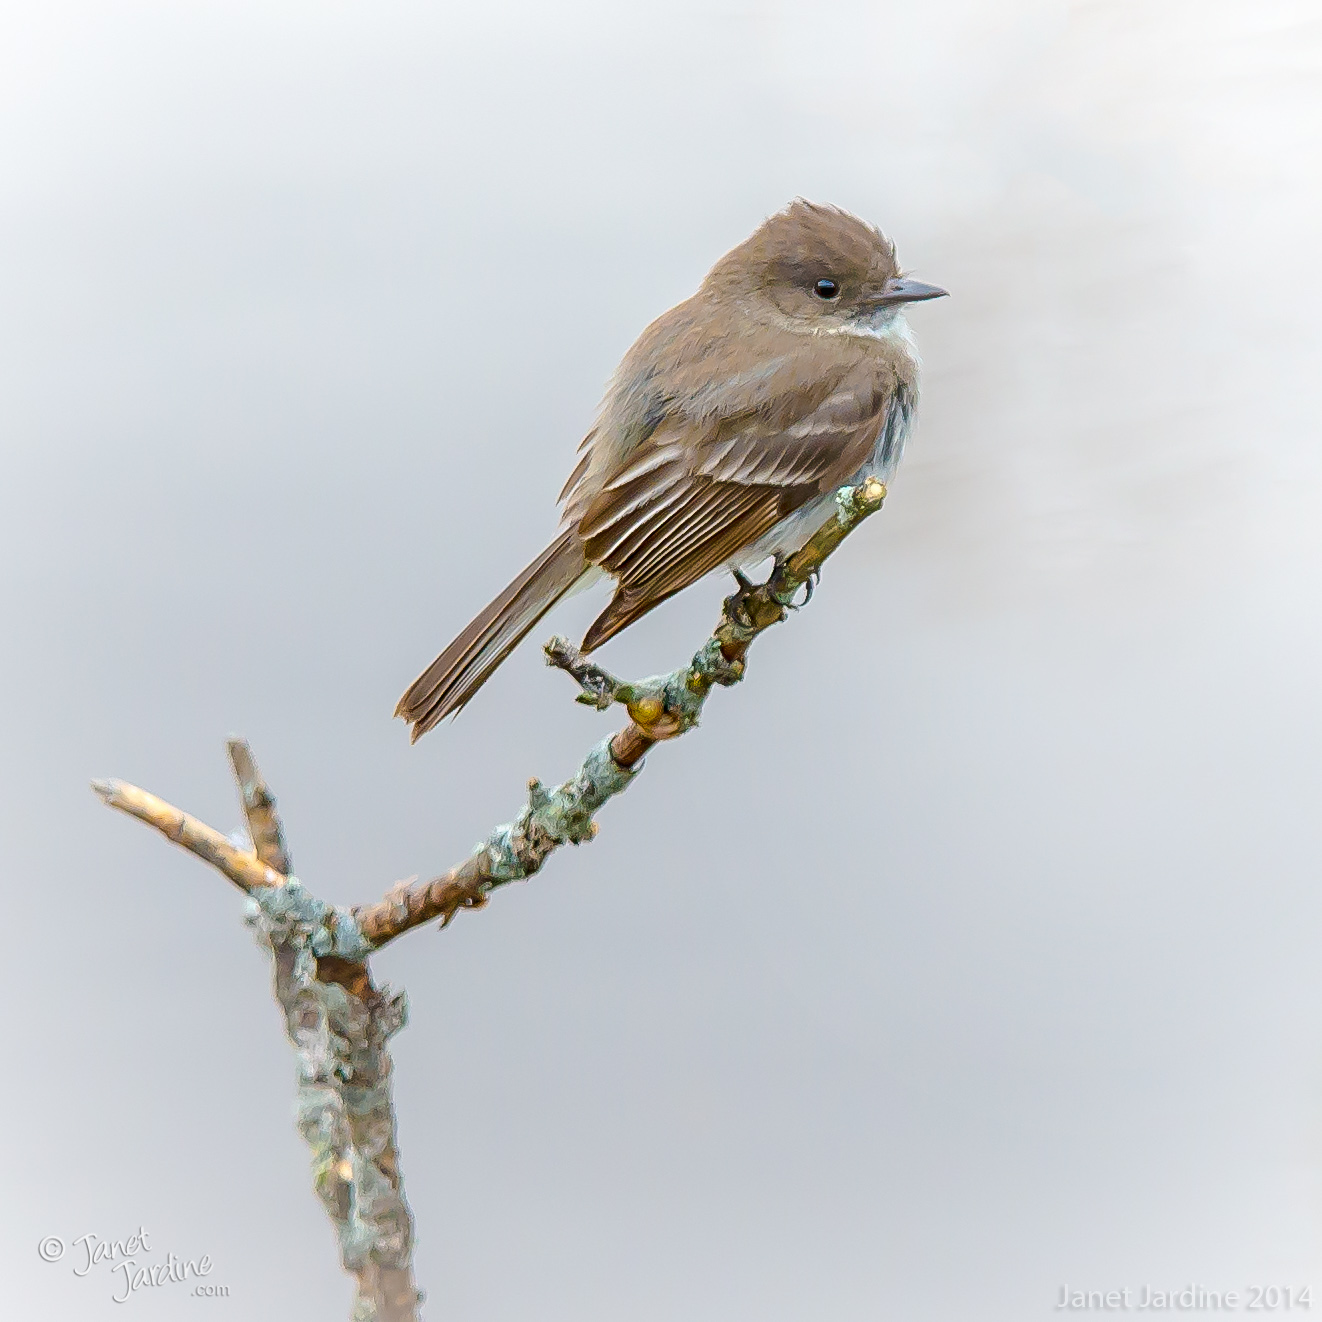 Eastern-Phoebe_Photo_copyright_Janet_Jardine_SquareSpace.jpg